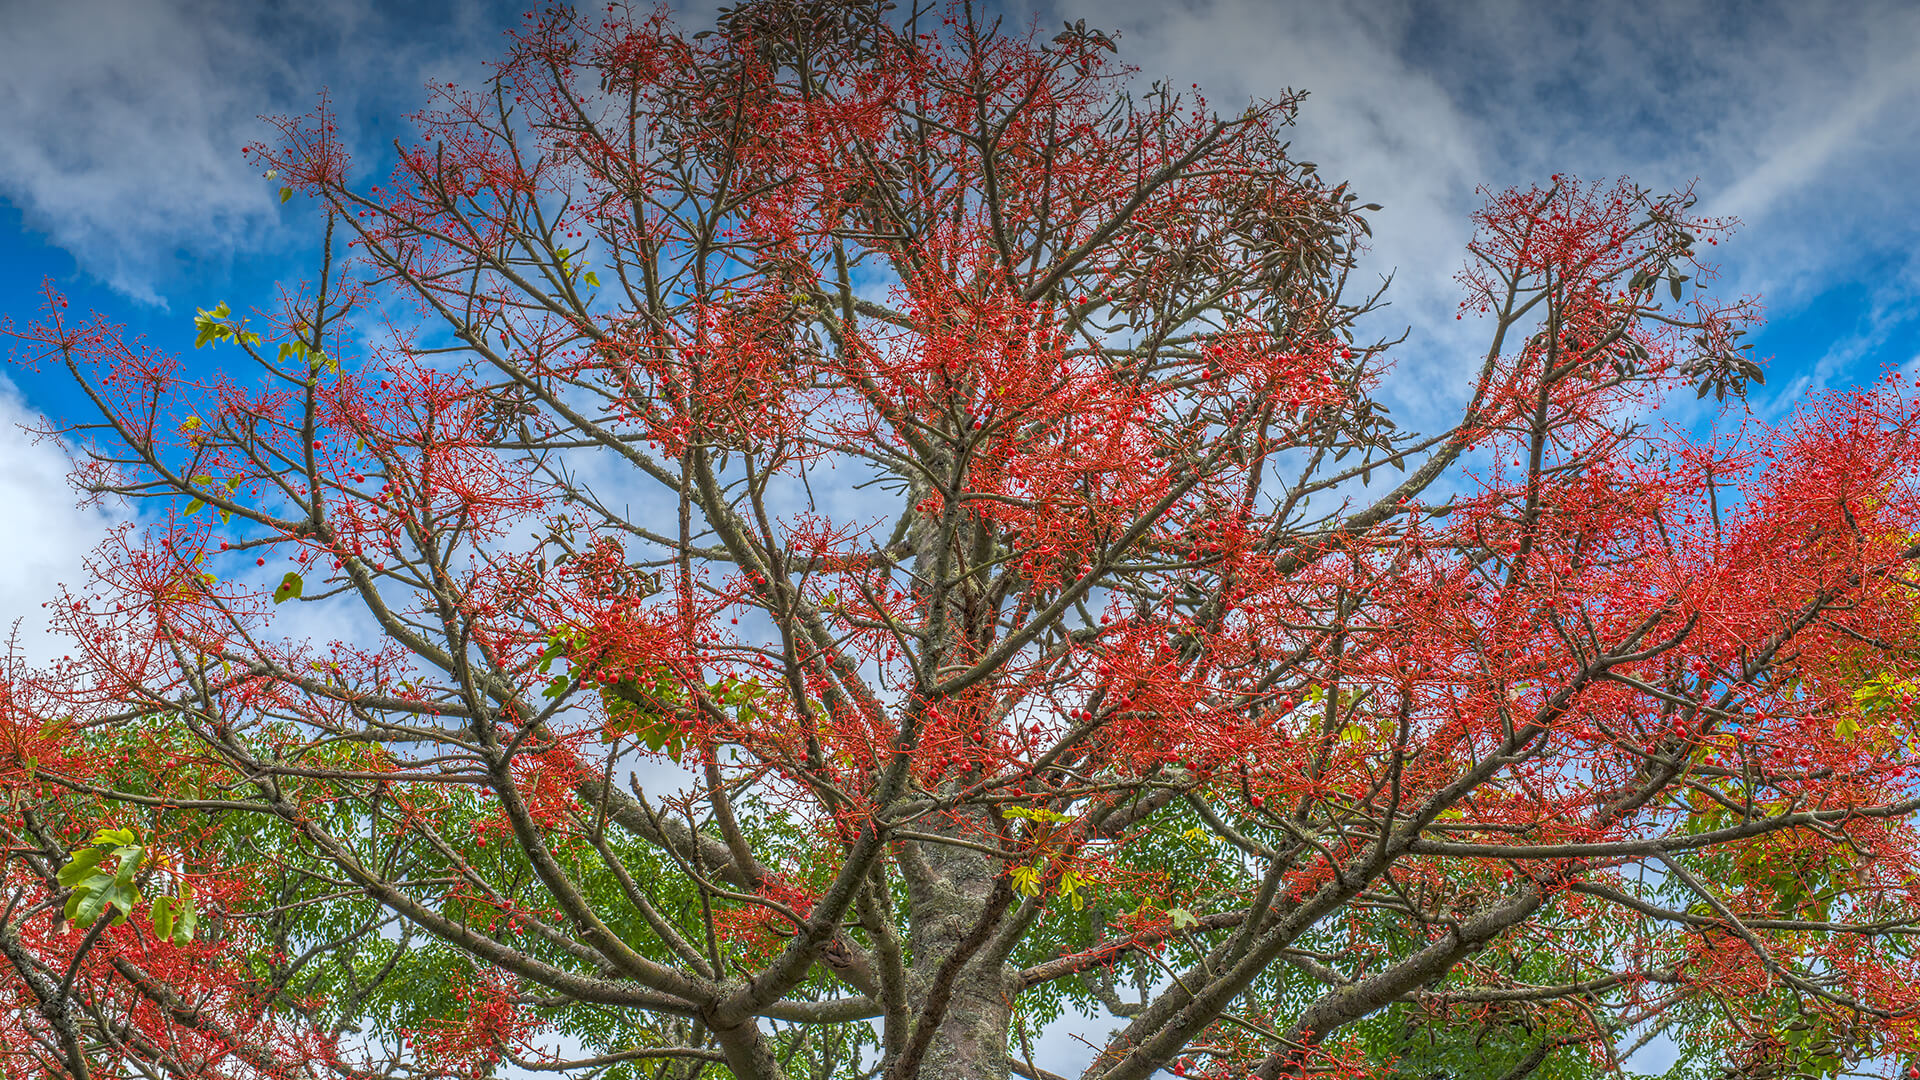 Australian Flame Tree | San Diego Zoo Animals & Plants